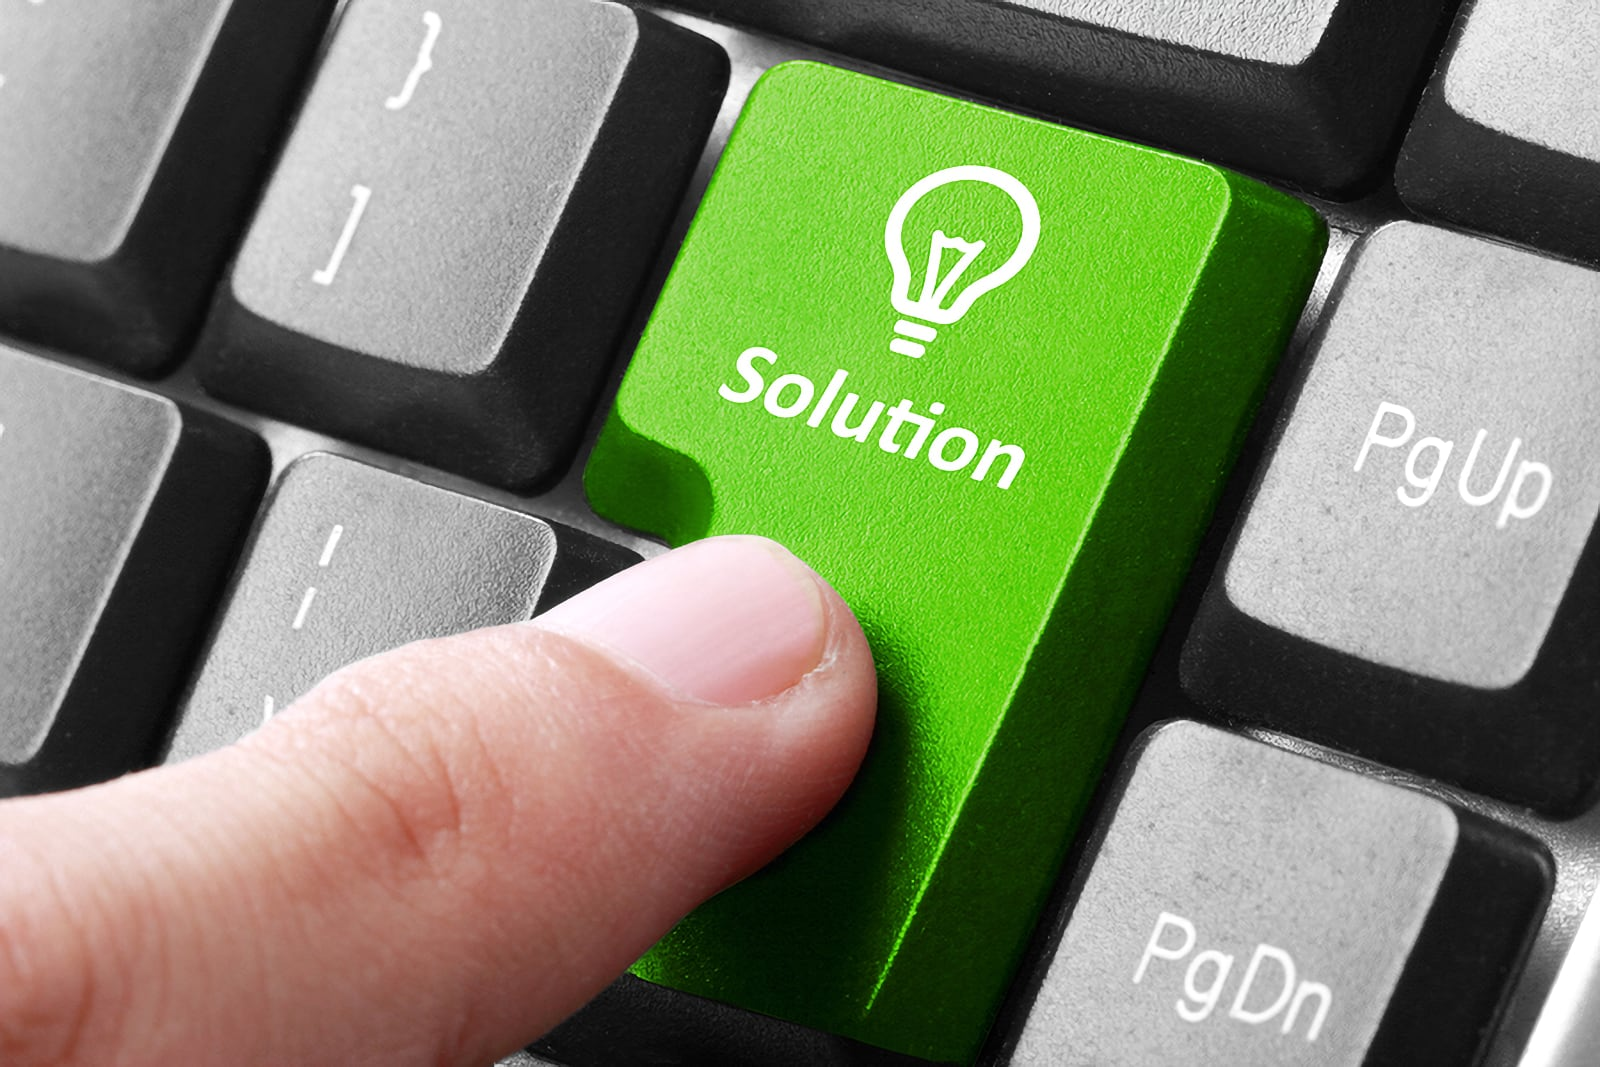 Photo concept of dark-coloured computer keyboard with larger green button showing the word Solution and a lightbulb icon